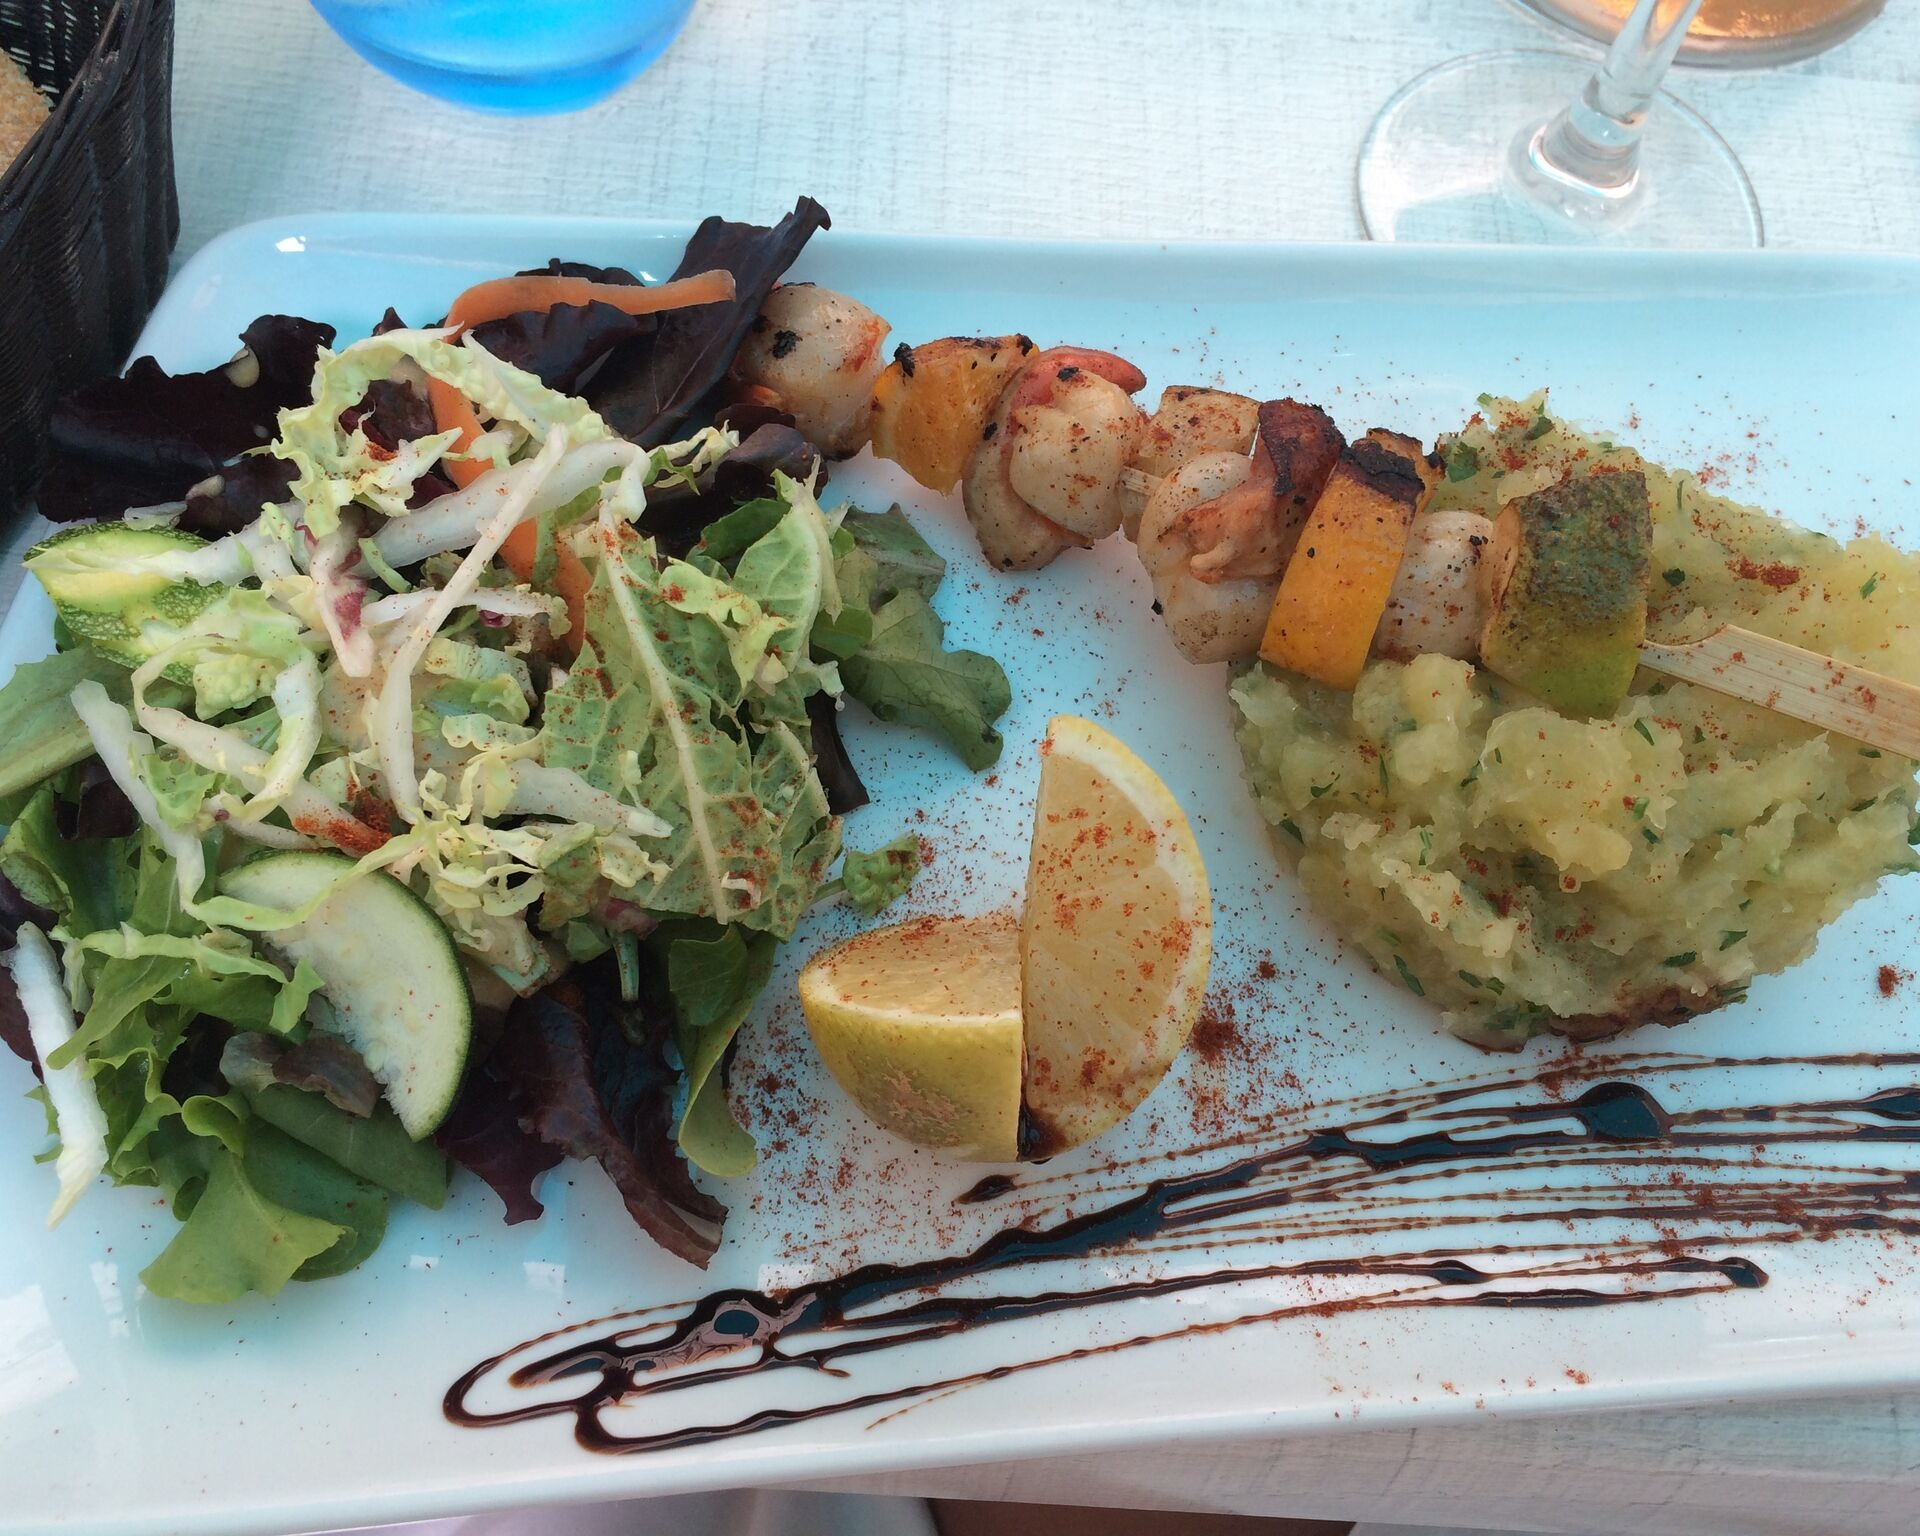 Lunch at a cafe off the shore of St. Tropez